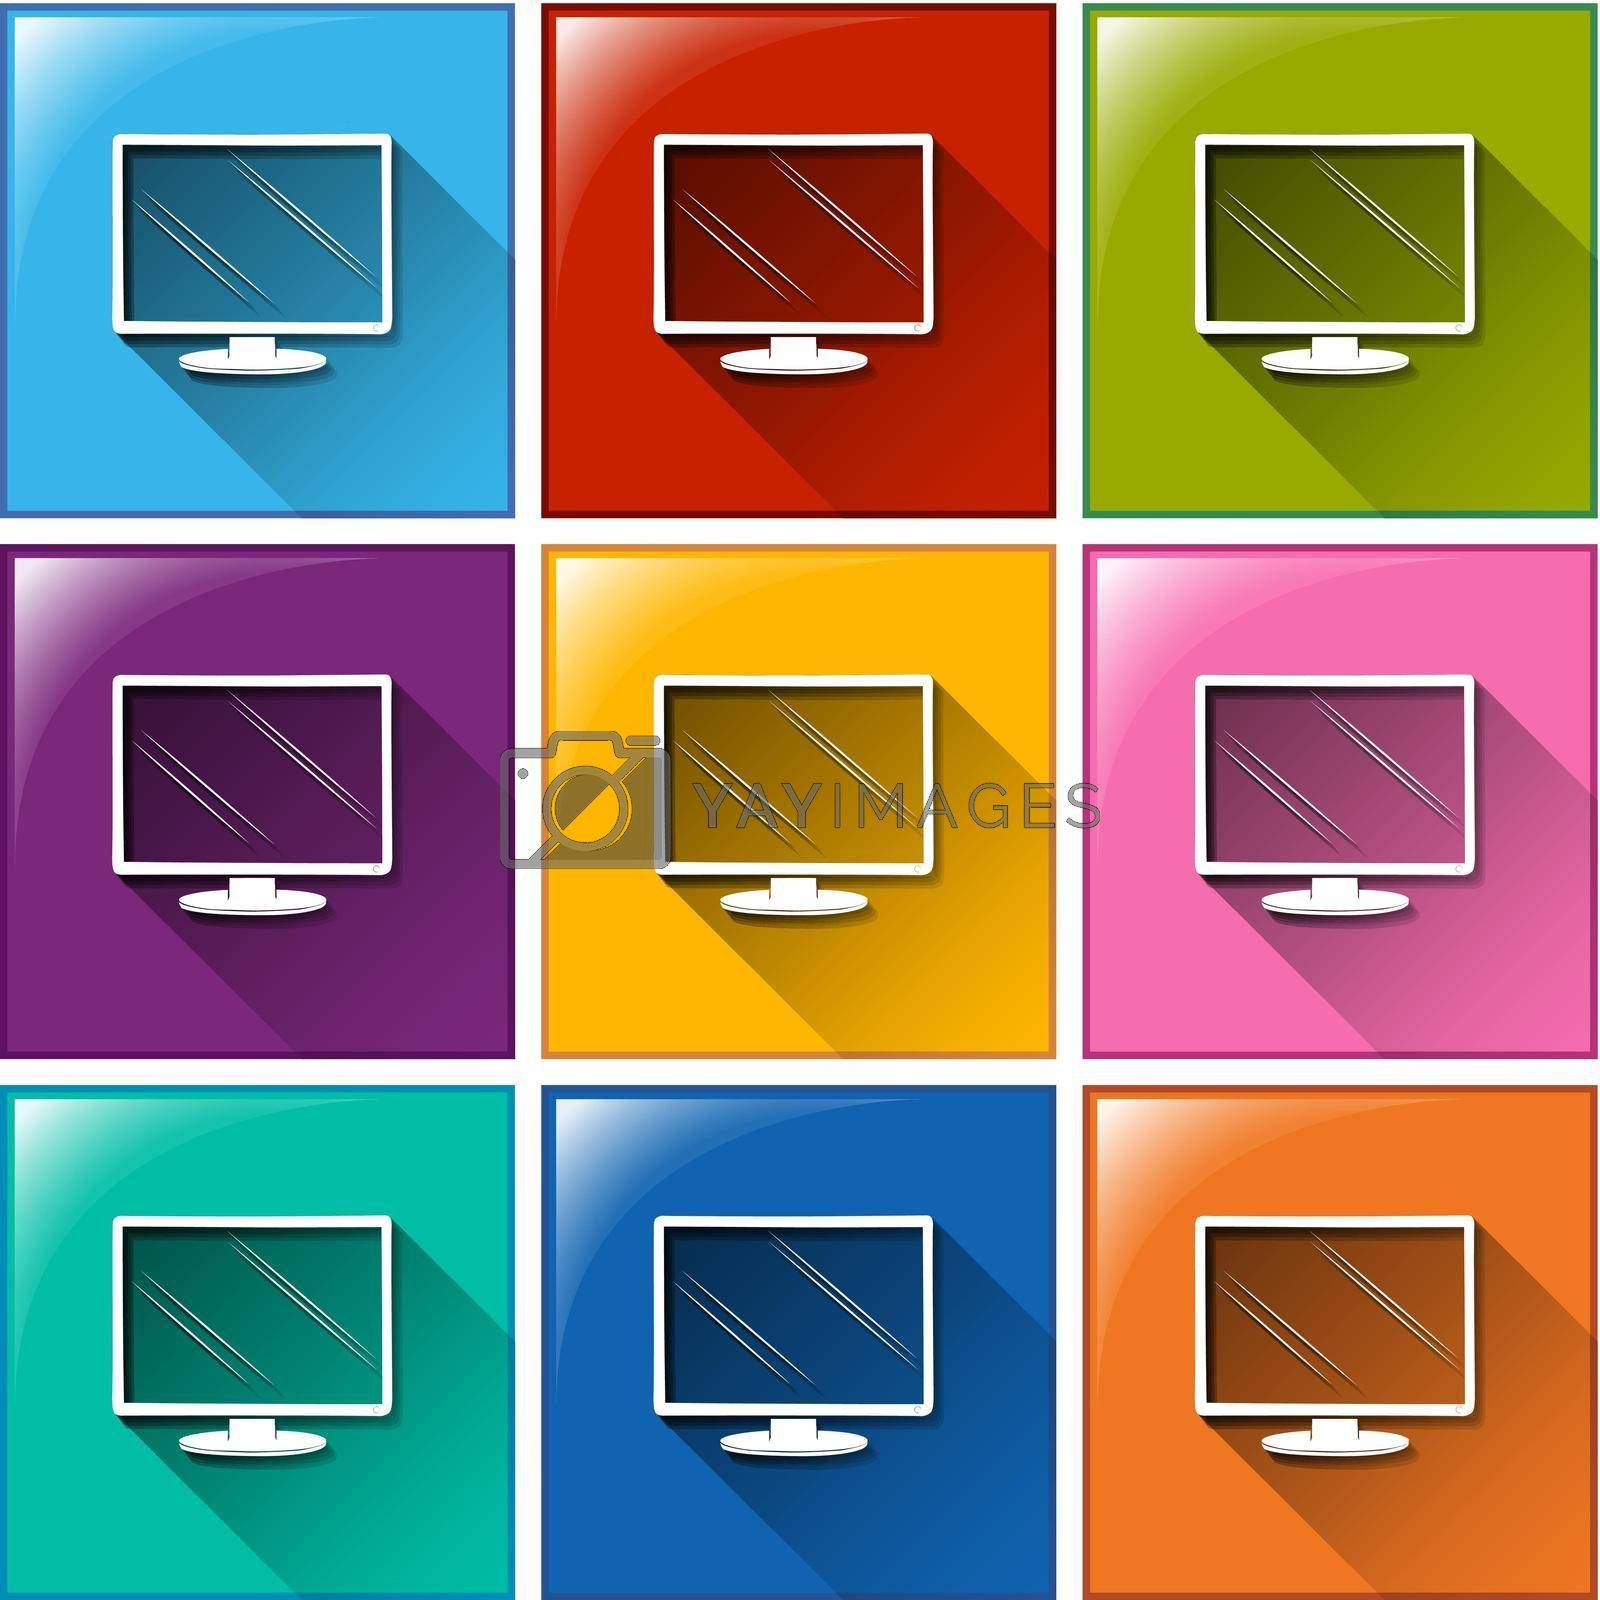 Illustration of different color of computer icons